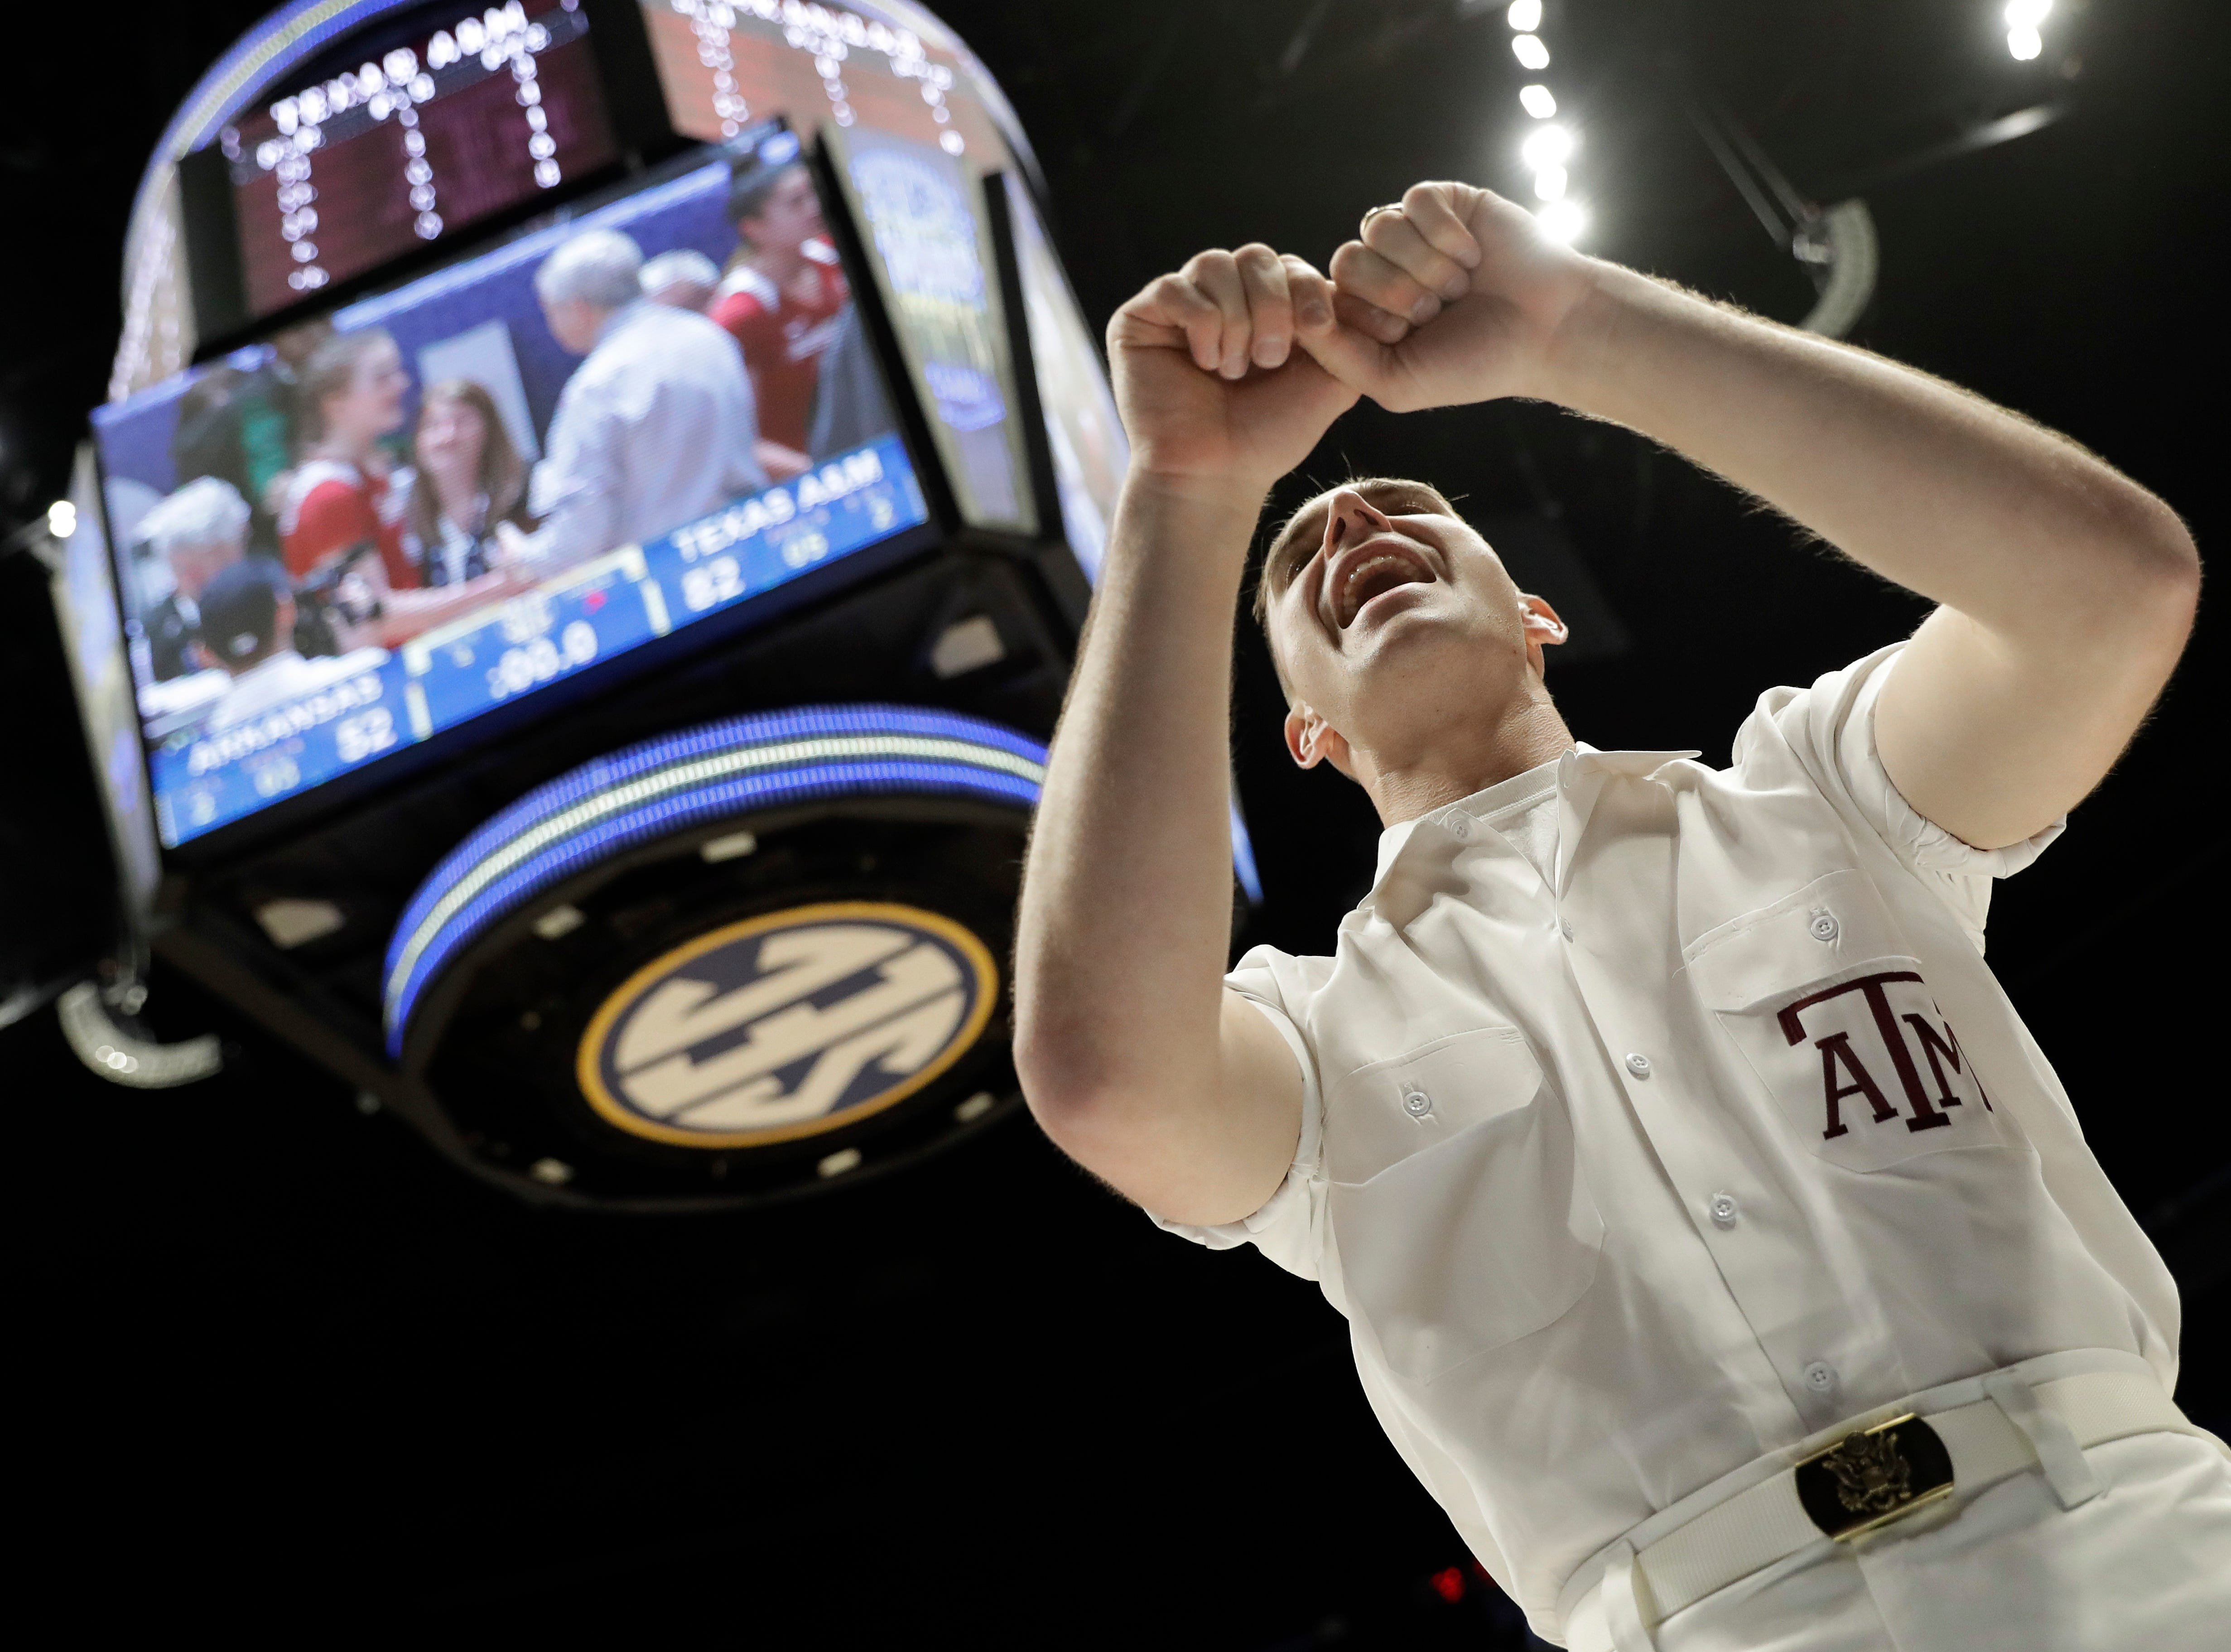 A Texas A&M cheerleader celebrates after a win against Arkansas in an NCAA college basketball game at the women's Southeastern Conference tournament Thursday, March 1, 2018, in Nashville, Tenn. Texas A&M won 82-52. (AP Photo/Mark Humphrey)